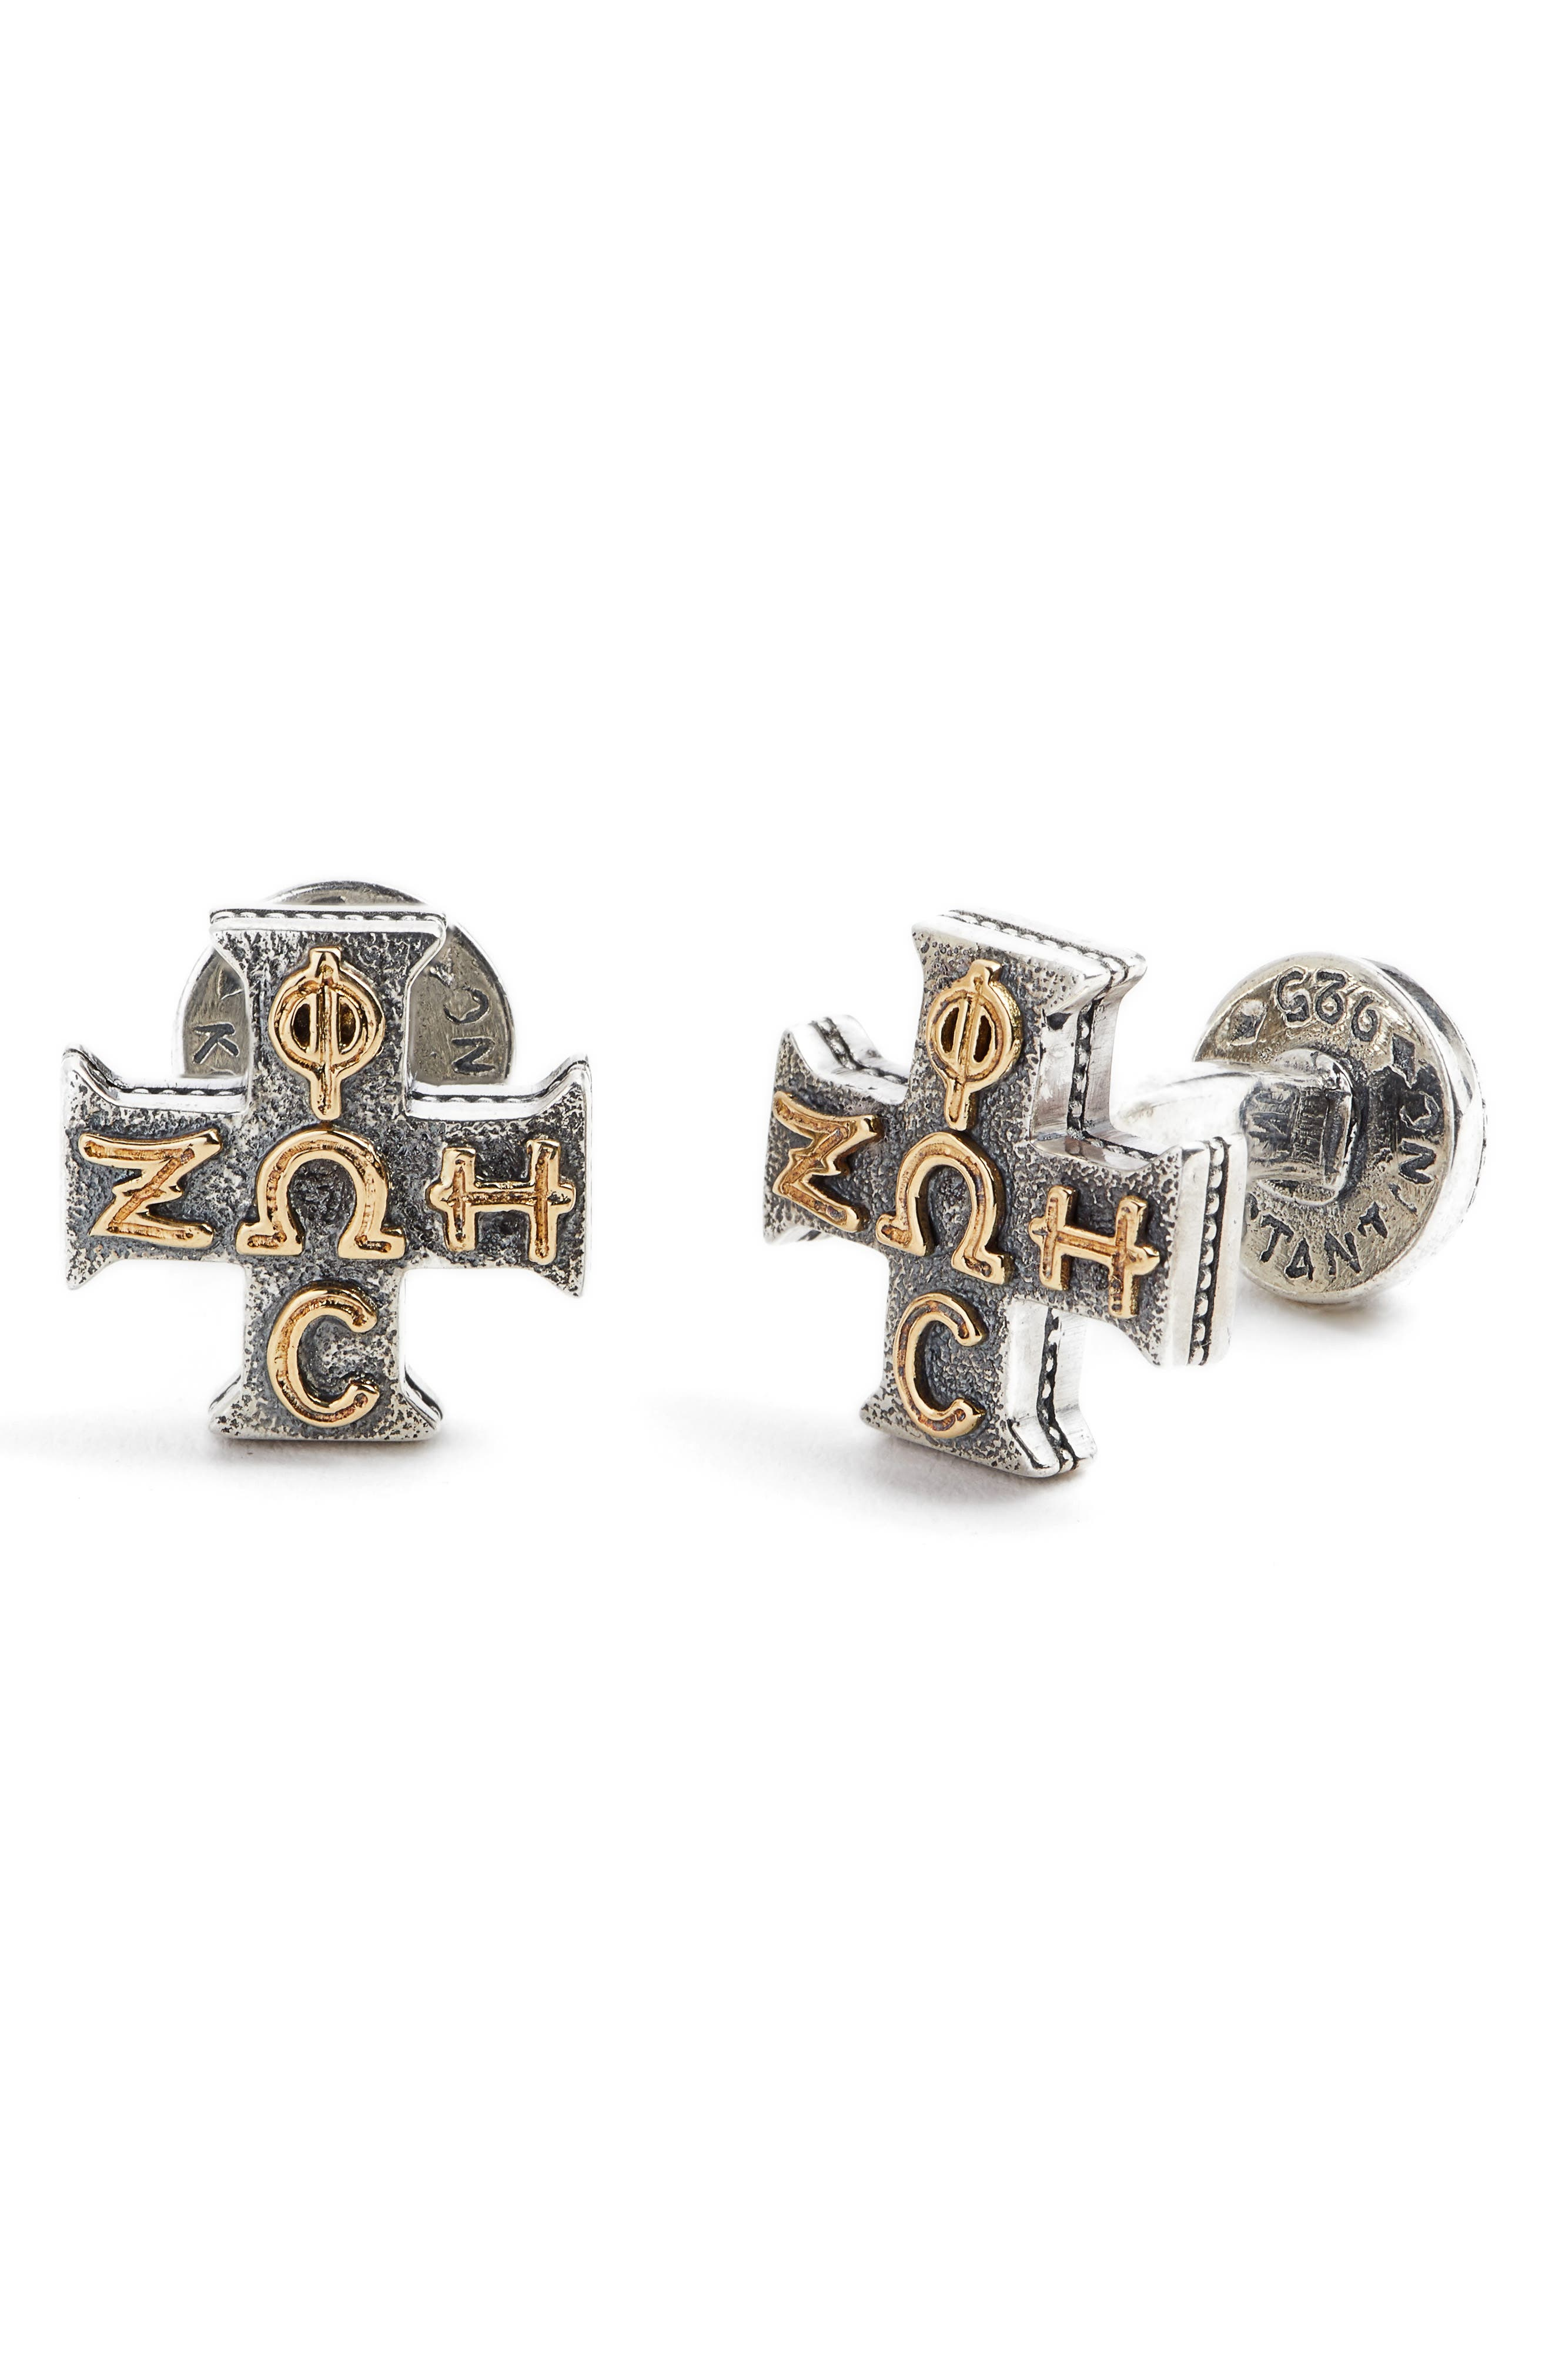 Stavros Cross Cuff Links,                             Main thumbnail 1, color,                             SILVER/ GOLD